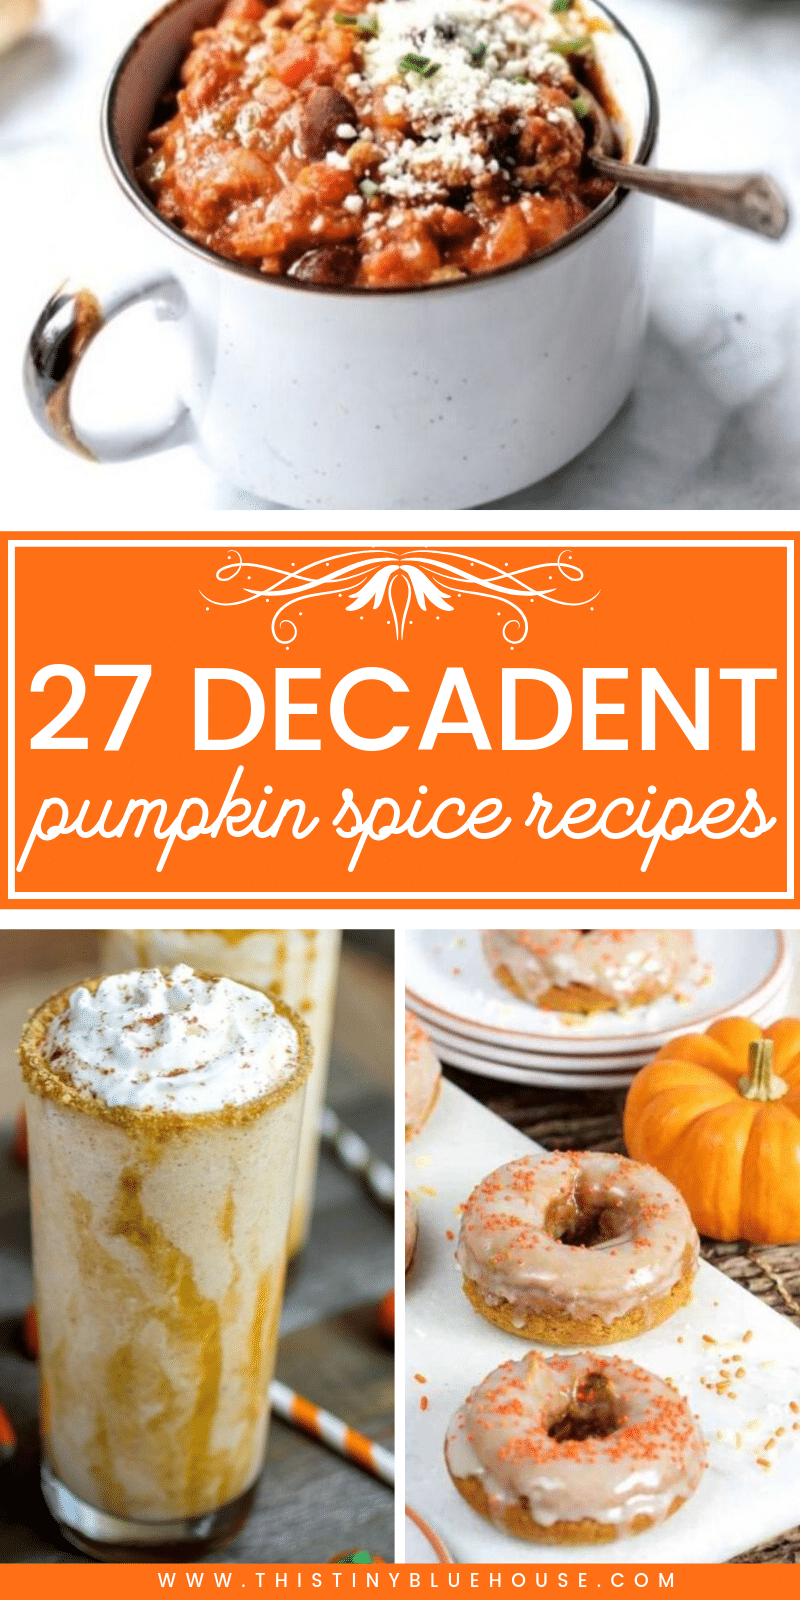 Here are 27 pumpkin spice recipes you just gotta try this year. From drinks to sweet and even savory this is a pumpkin spice lovers dream! #pumpkinspice #pumpkinspicerecipes #pumpkinspsicedrinks #pumpksinspicebeverages #pumpkinspicemuffins #pumpkinspicedinners #pumpksinspicerecipes #bestpumpkinspicerecipes